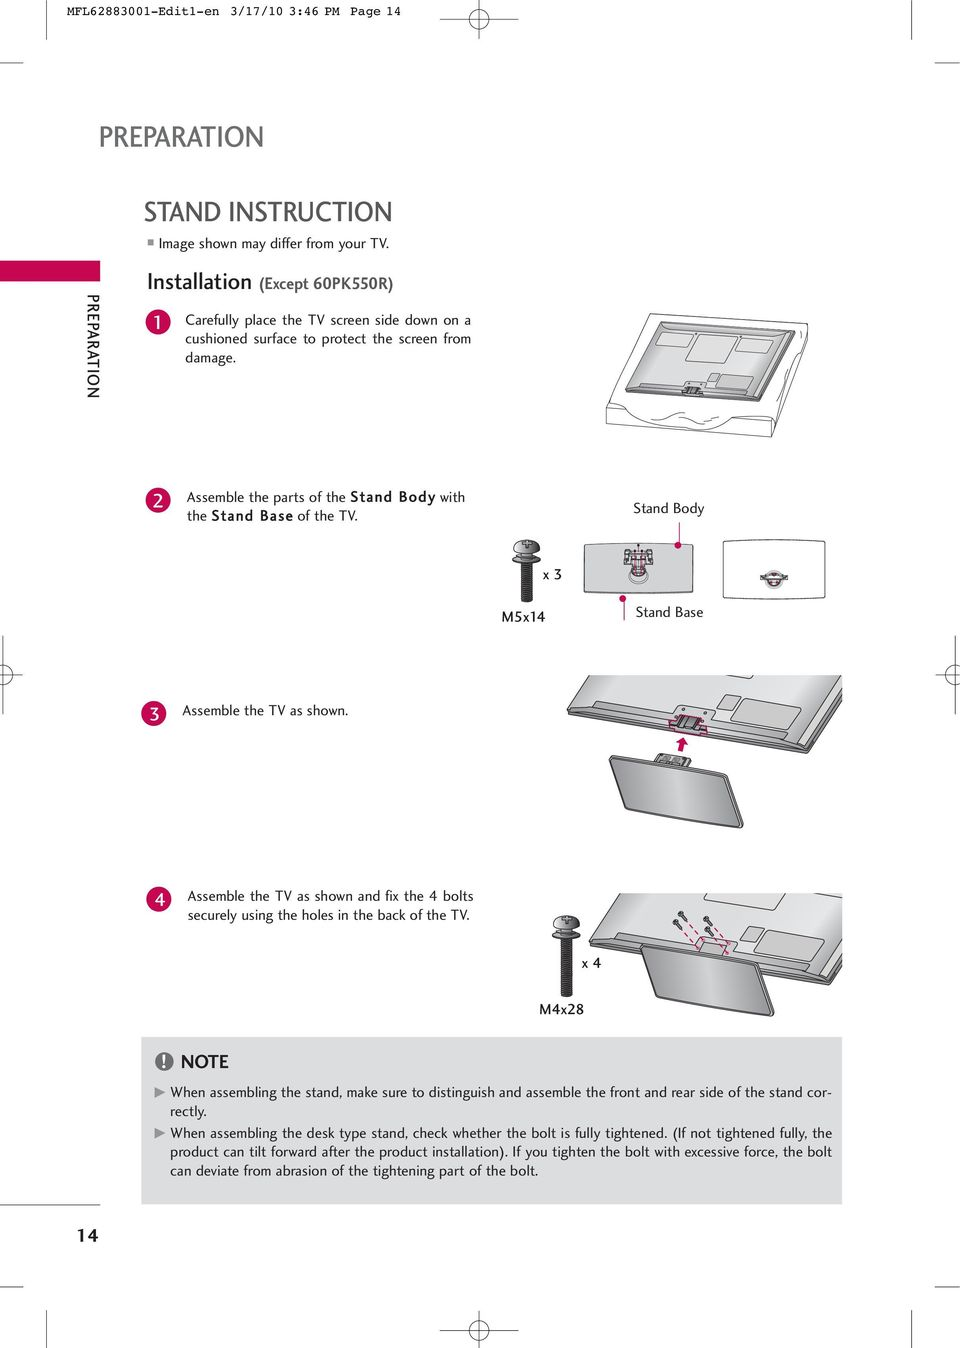 Assemble the parts of the Stand Body with the Stand Base of the TV. Stand Body x 3 M5x4 Stand Base 3 Assemble the TV as shown.